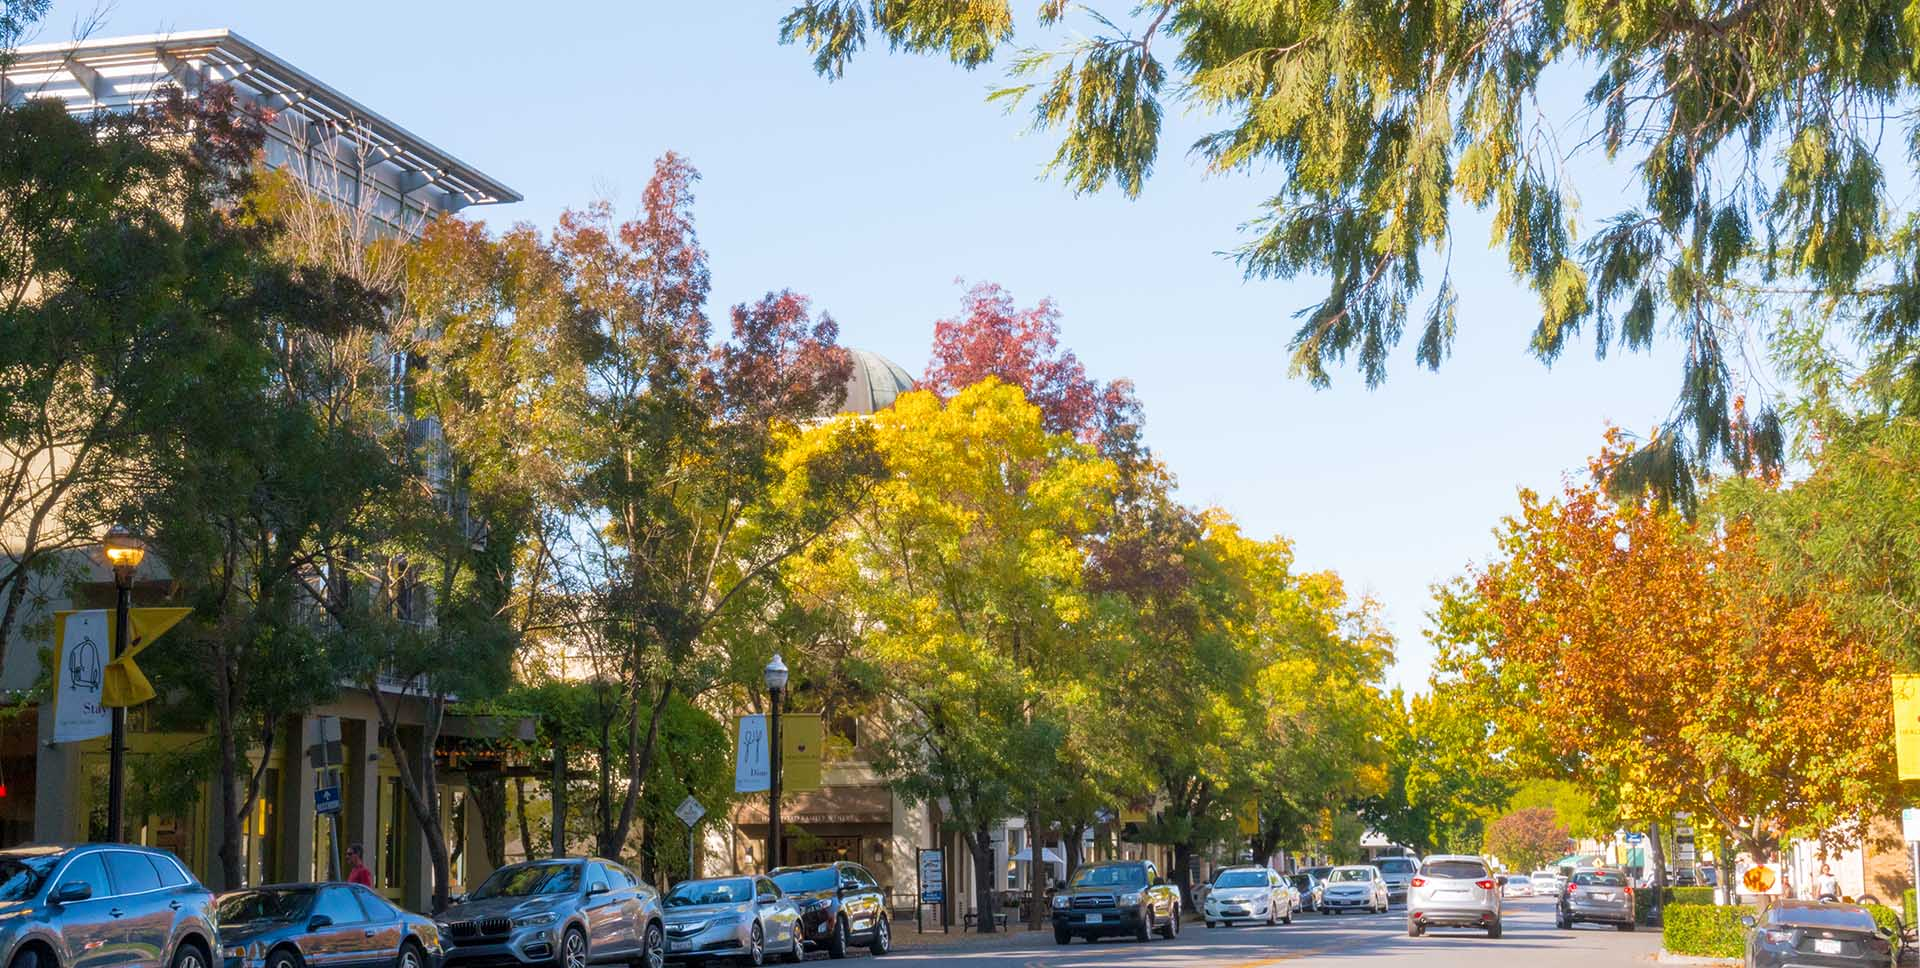 Photo of downtown Healdsburg